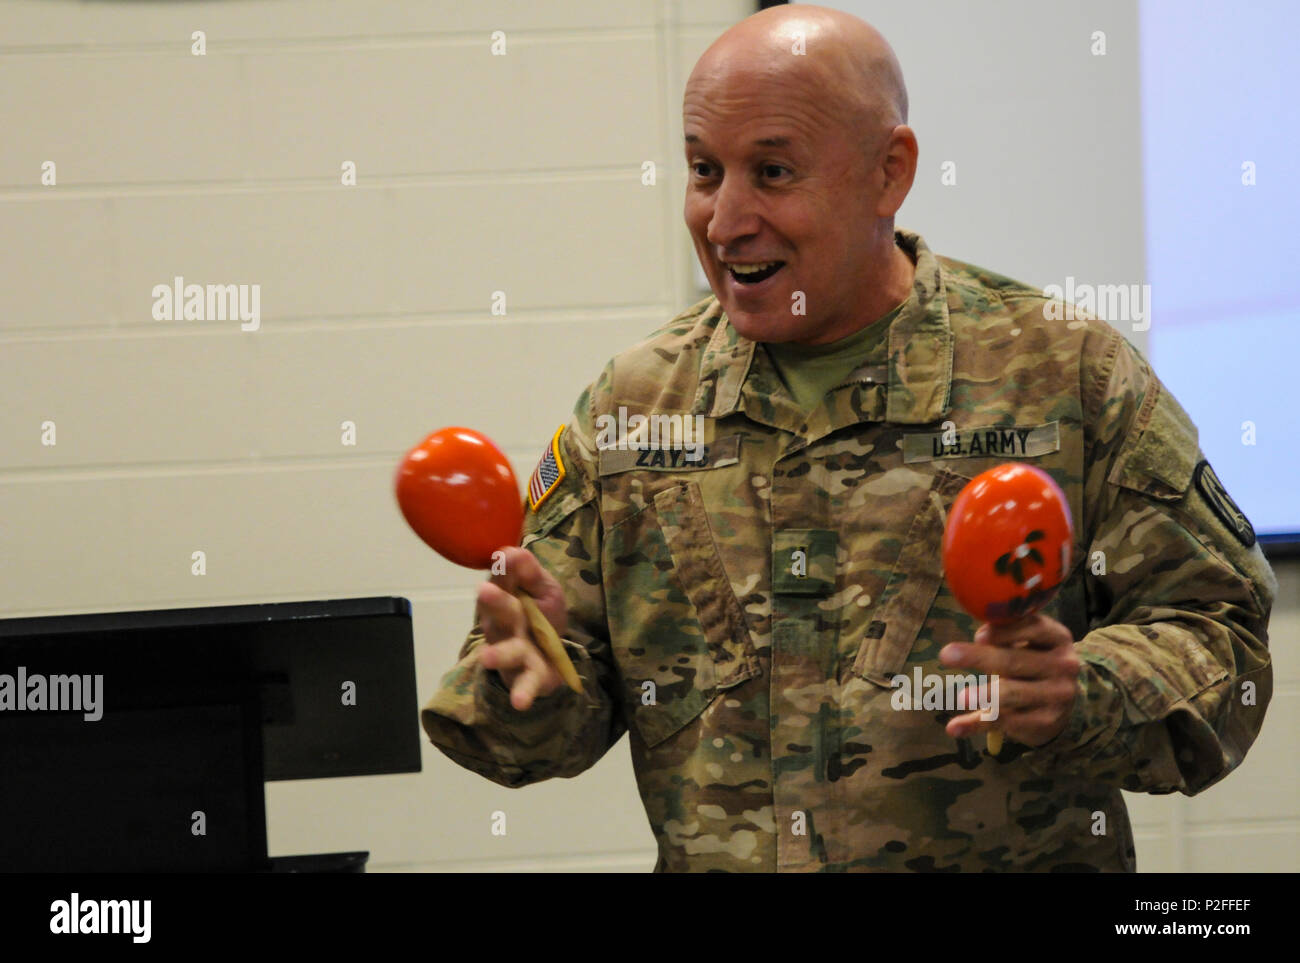 CW5 Miguel Zayas, a Caguas, Puerto Rico native and G36 senior technical advisor, and MSG Marland Williams, the G1 noncommissioned officer in charge, both from the 335th Signal Command (Theater), discuss how to properly play the maracas during the Equal Opportunity Observance in East Point, Georgia Sept. 18, 2016. During battle assembly weekend, the Equal Opportunity Office conducted its annual observance of National Hispanic Heritage Month. (U.S. Army photo by Sgt. Stephanie A. Hargett) (Released) - Stock Image